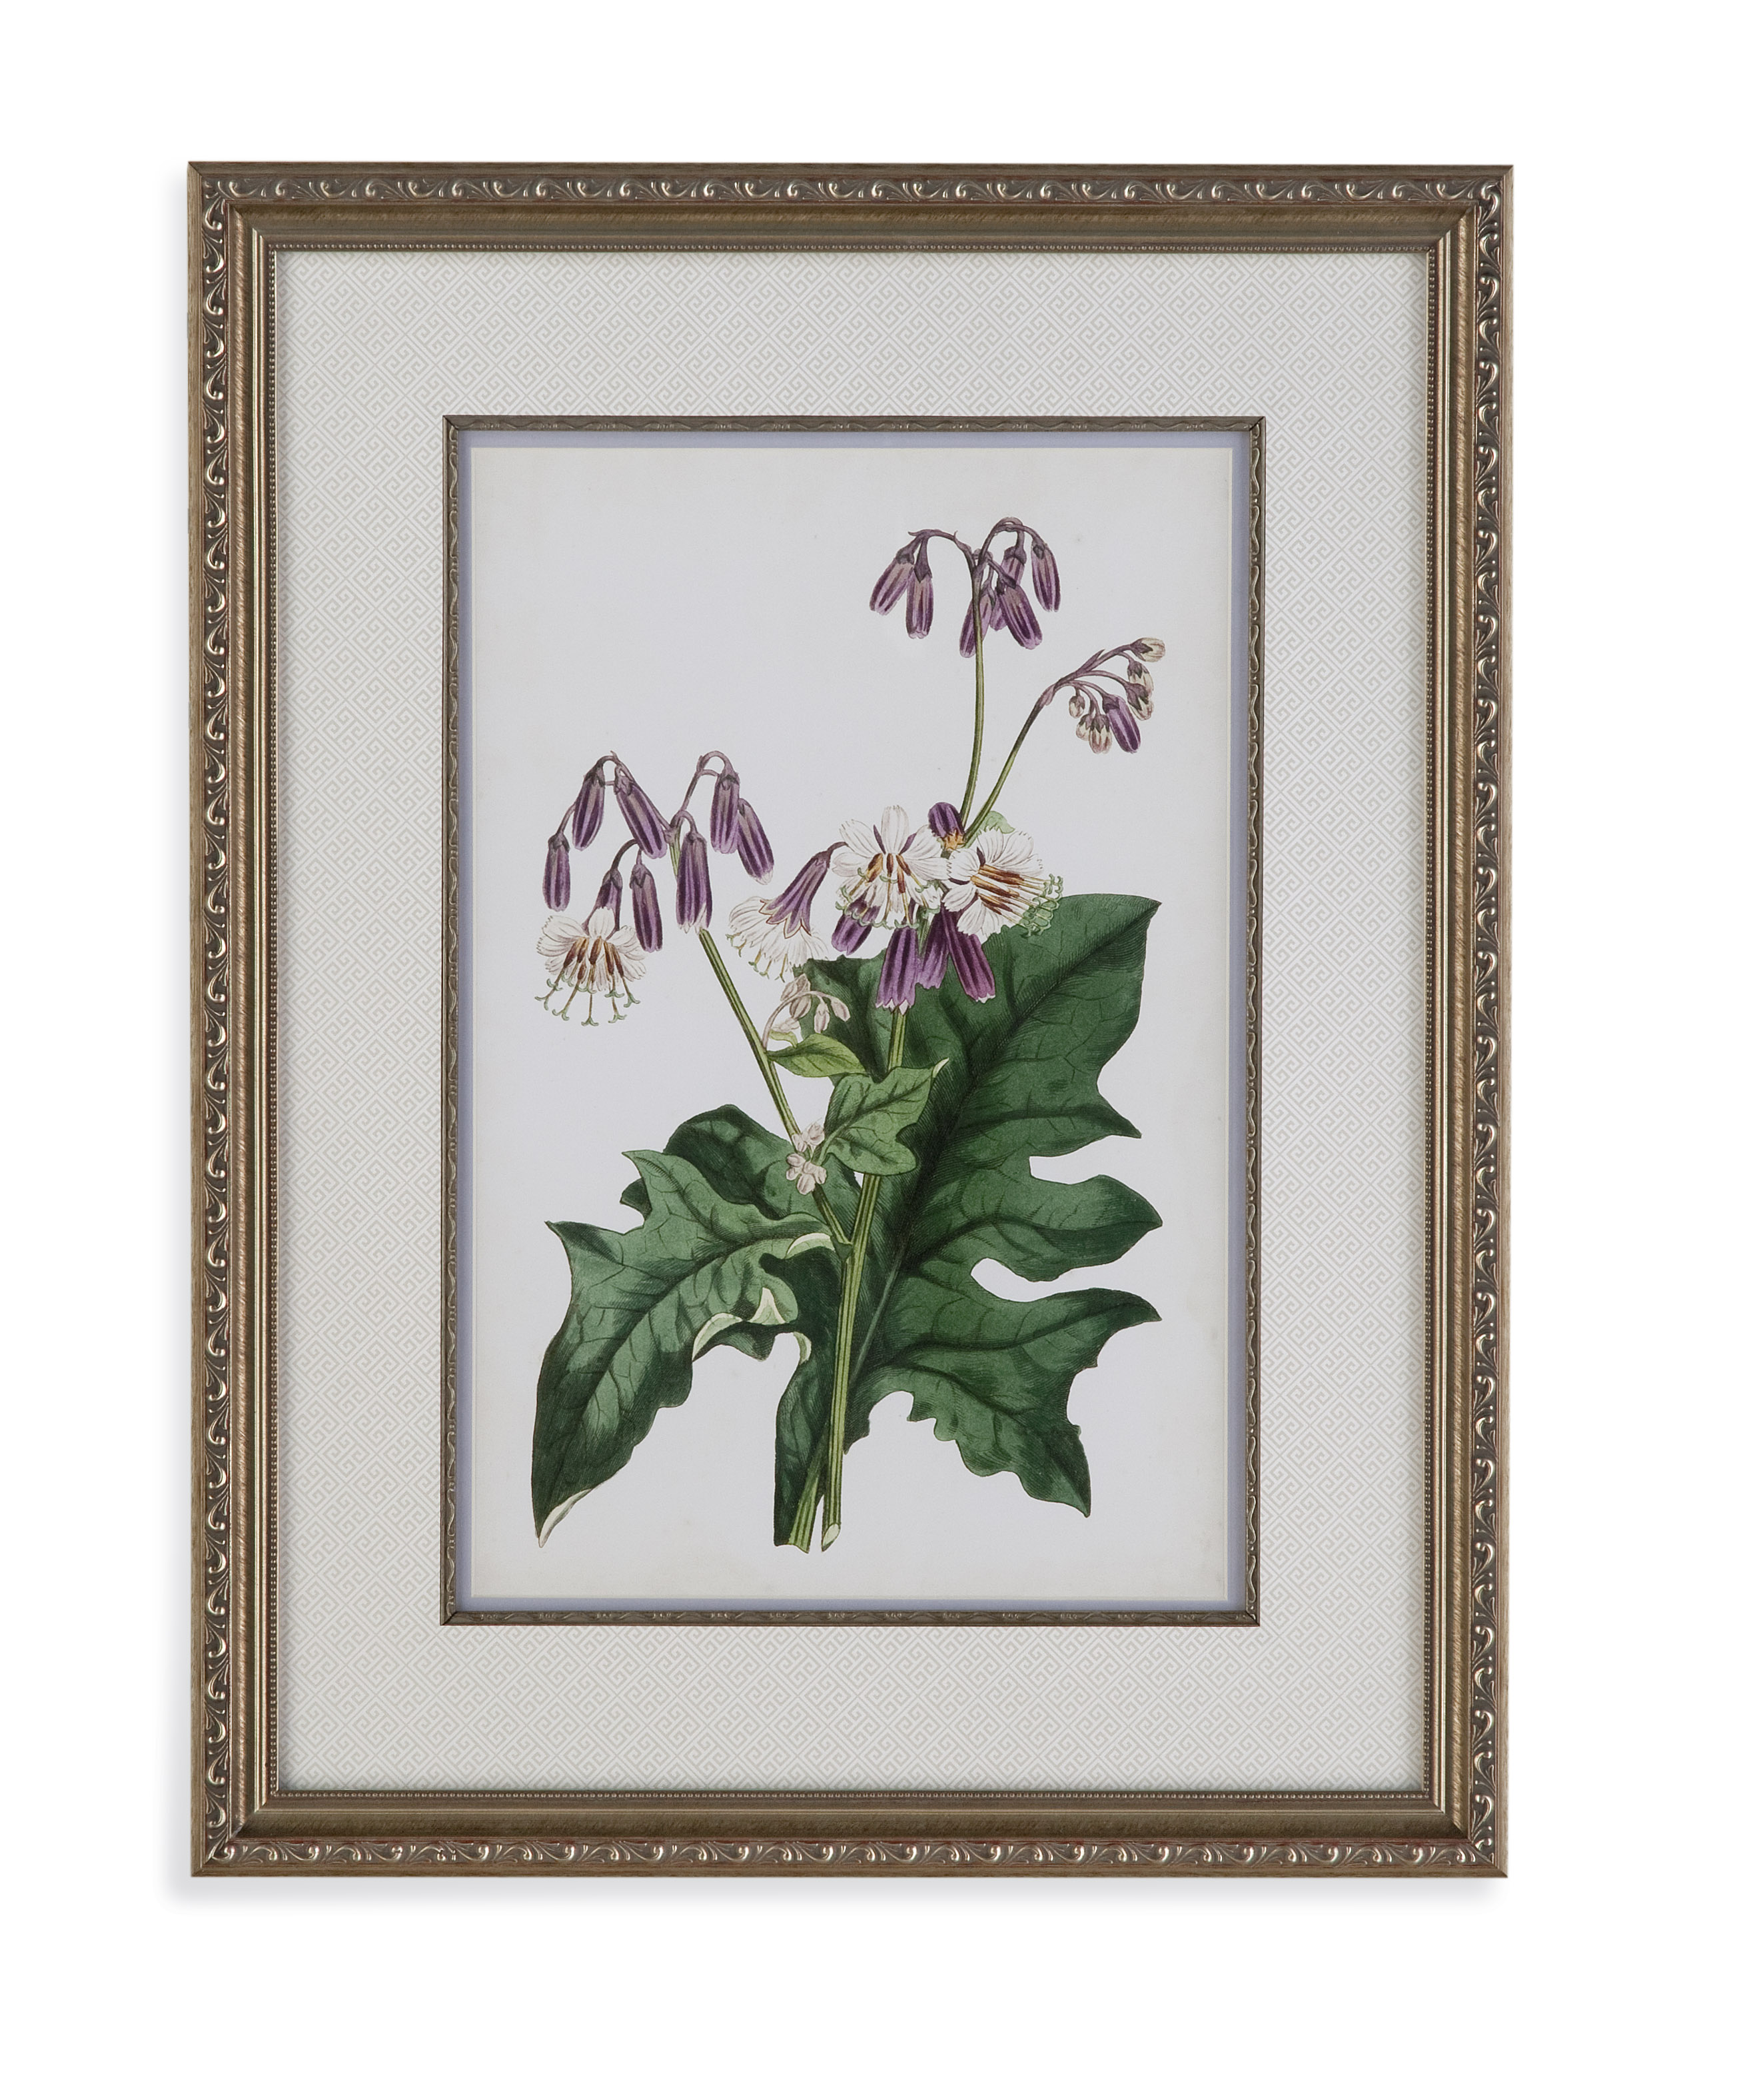 Old World Lavender Florals VII by Bassett Mirror at Alison Craig Home Furnishings